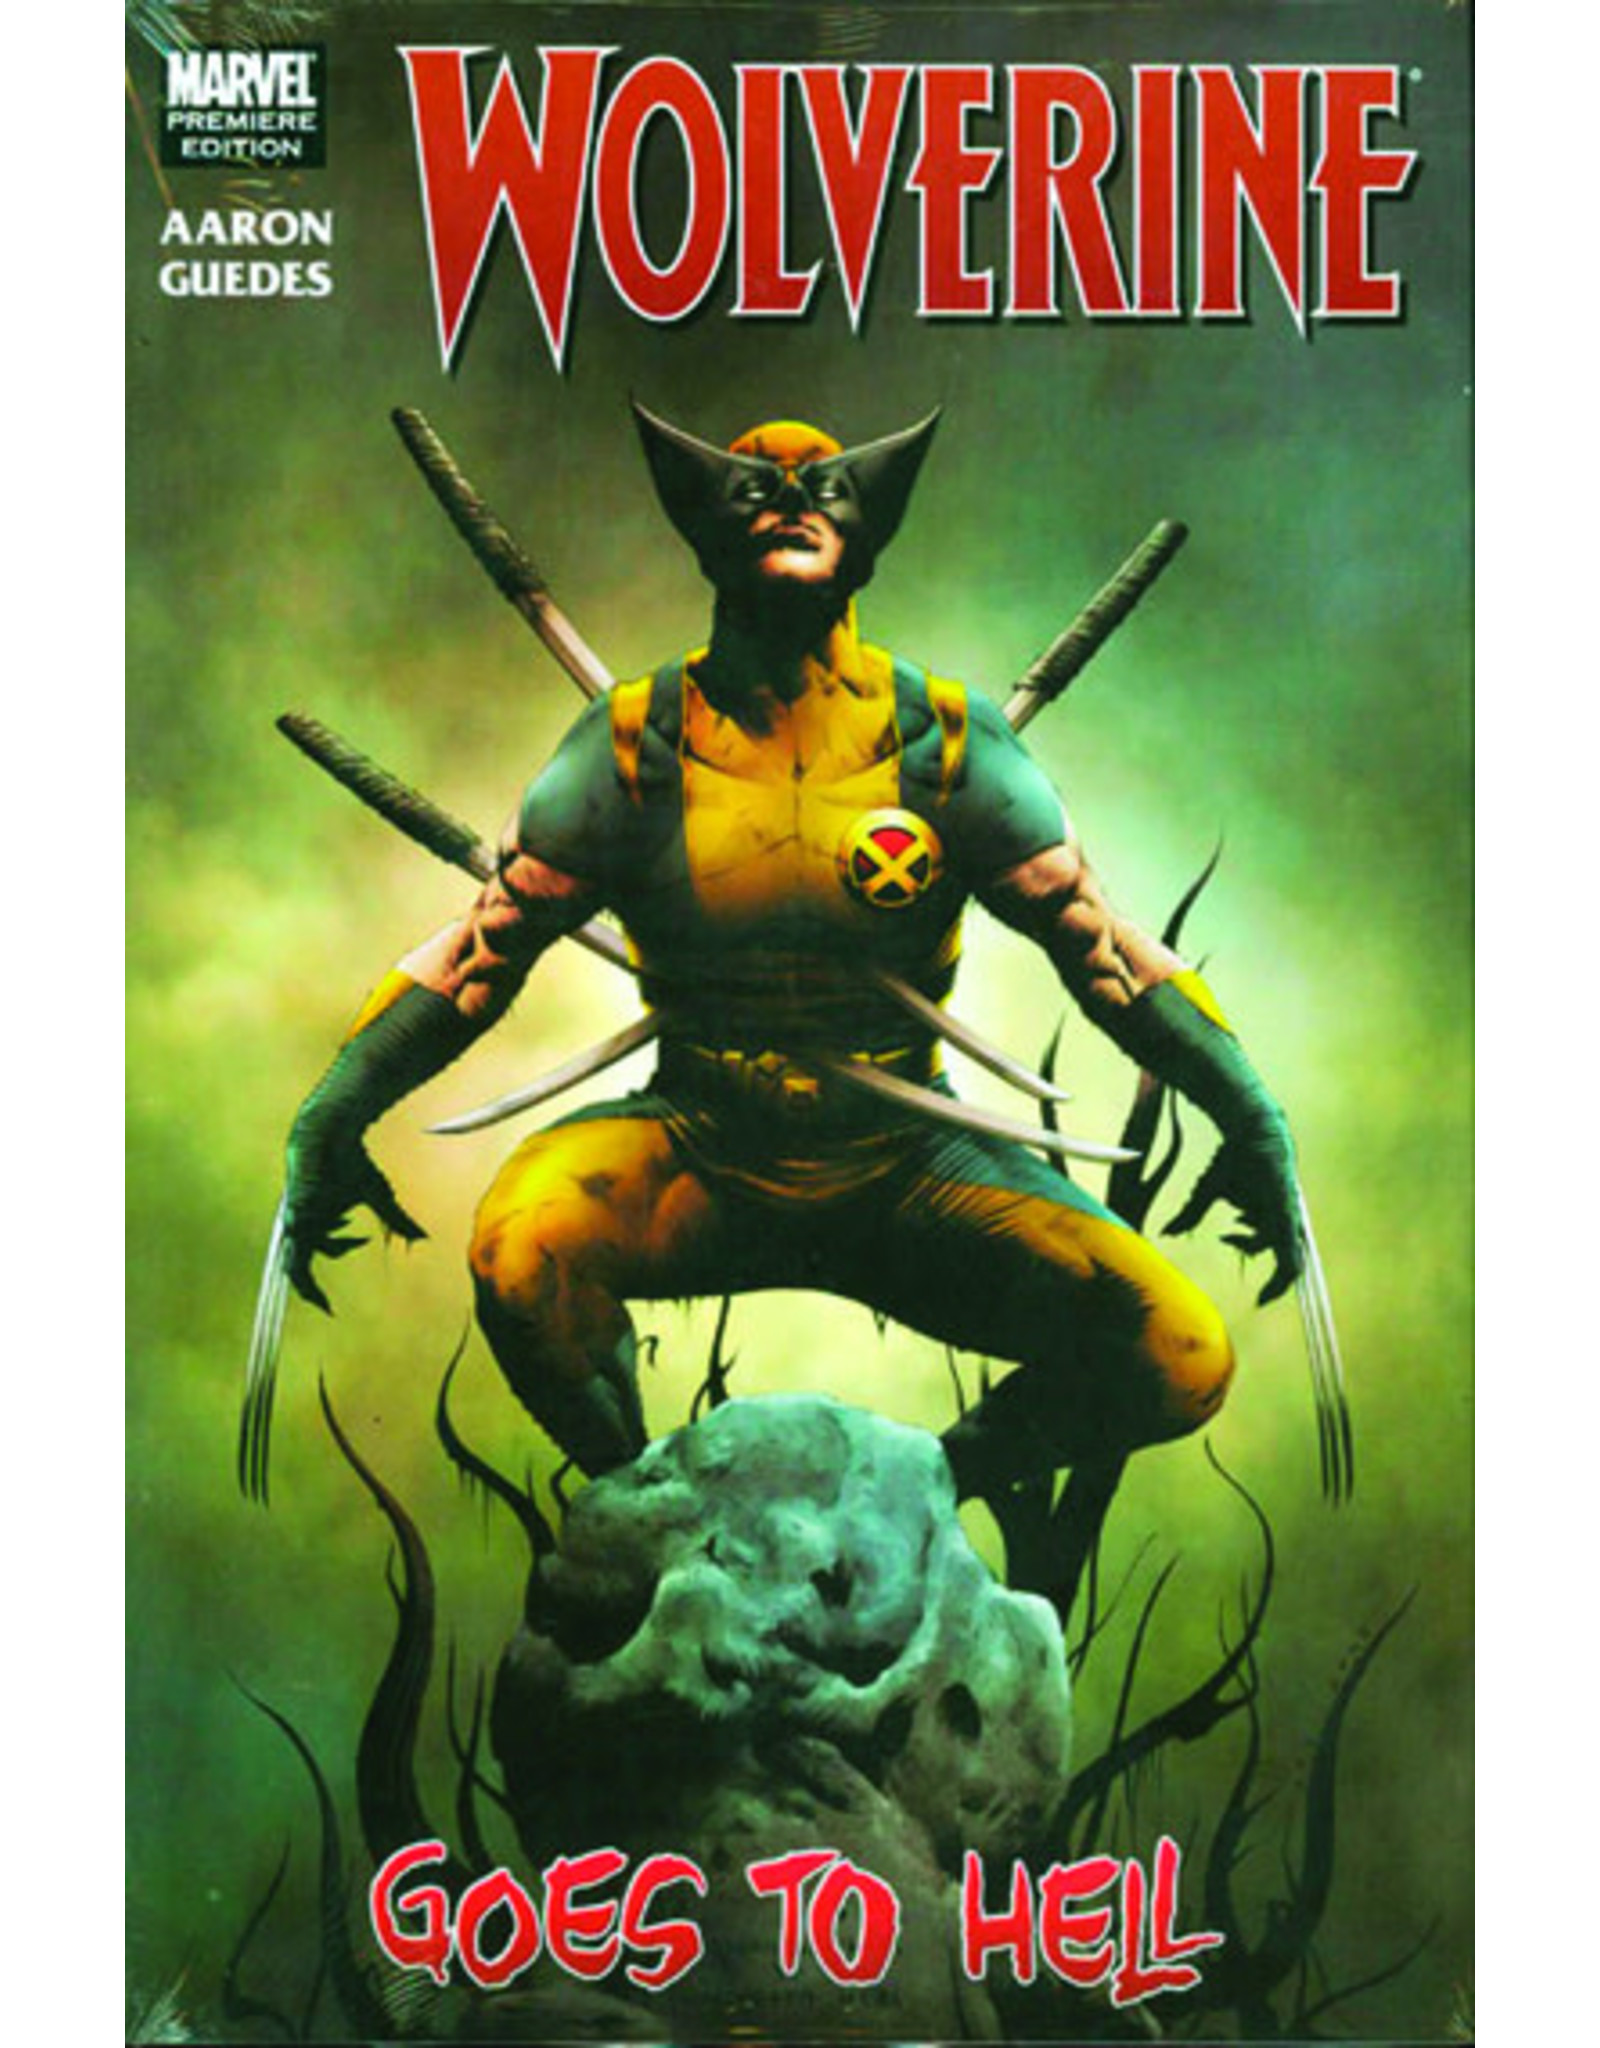 MARVEL COMICS WOLVERINE WOLVERINE GOES TO HELL PREM HC